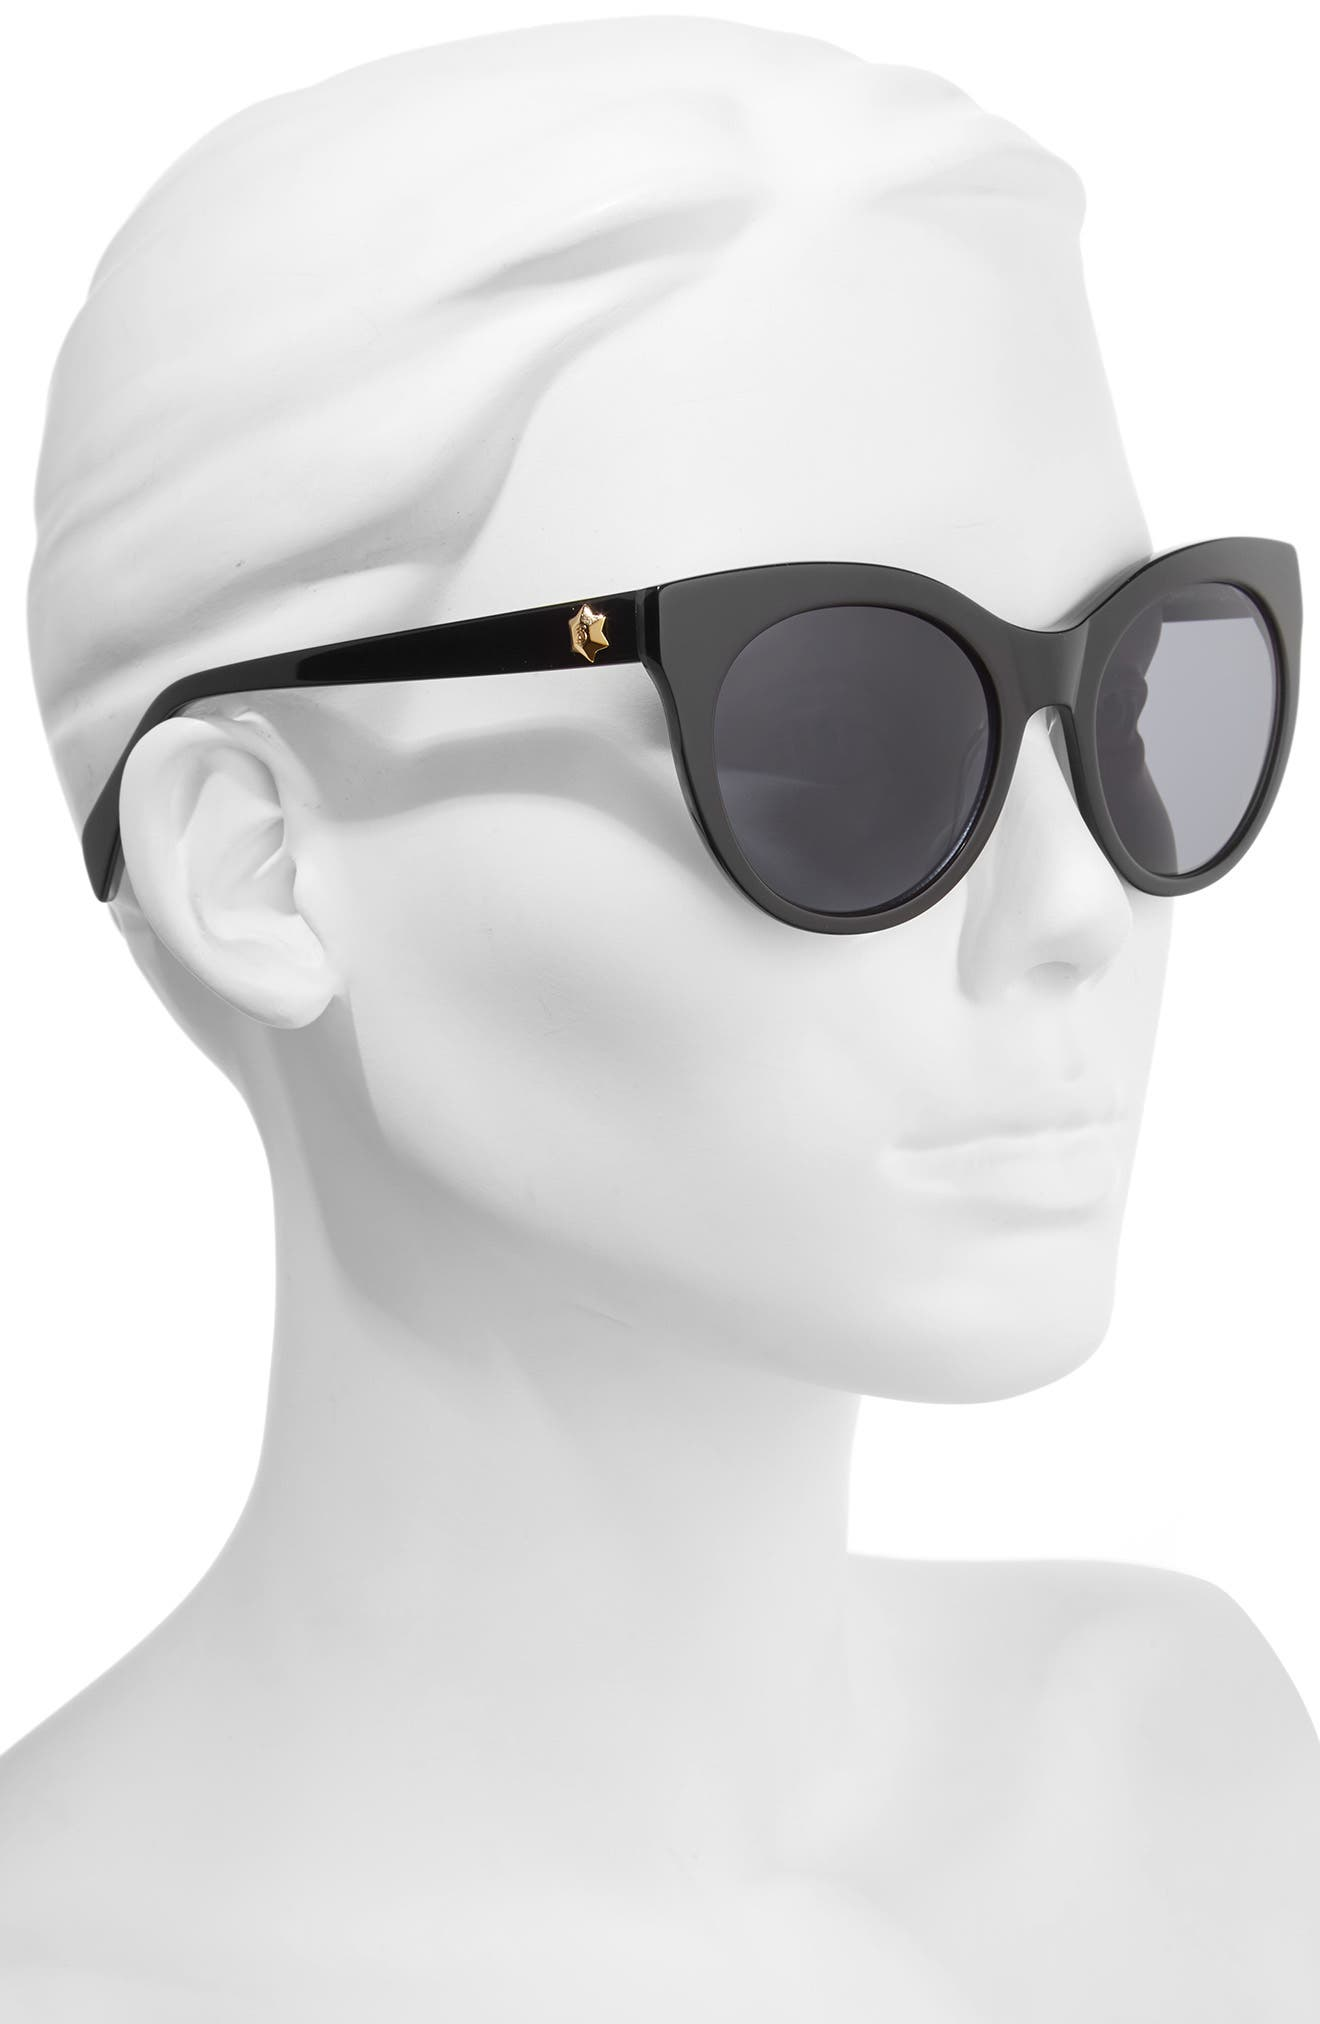 52mm Round Cat Eye Sunglasses,                             Alternate thumbnail 2, color,                             001